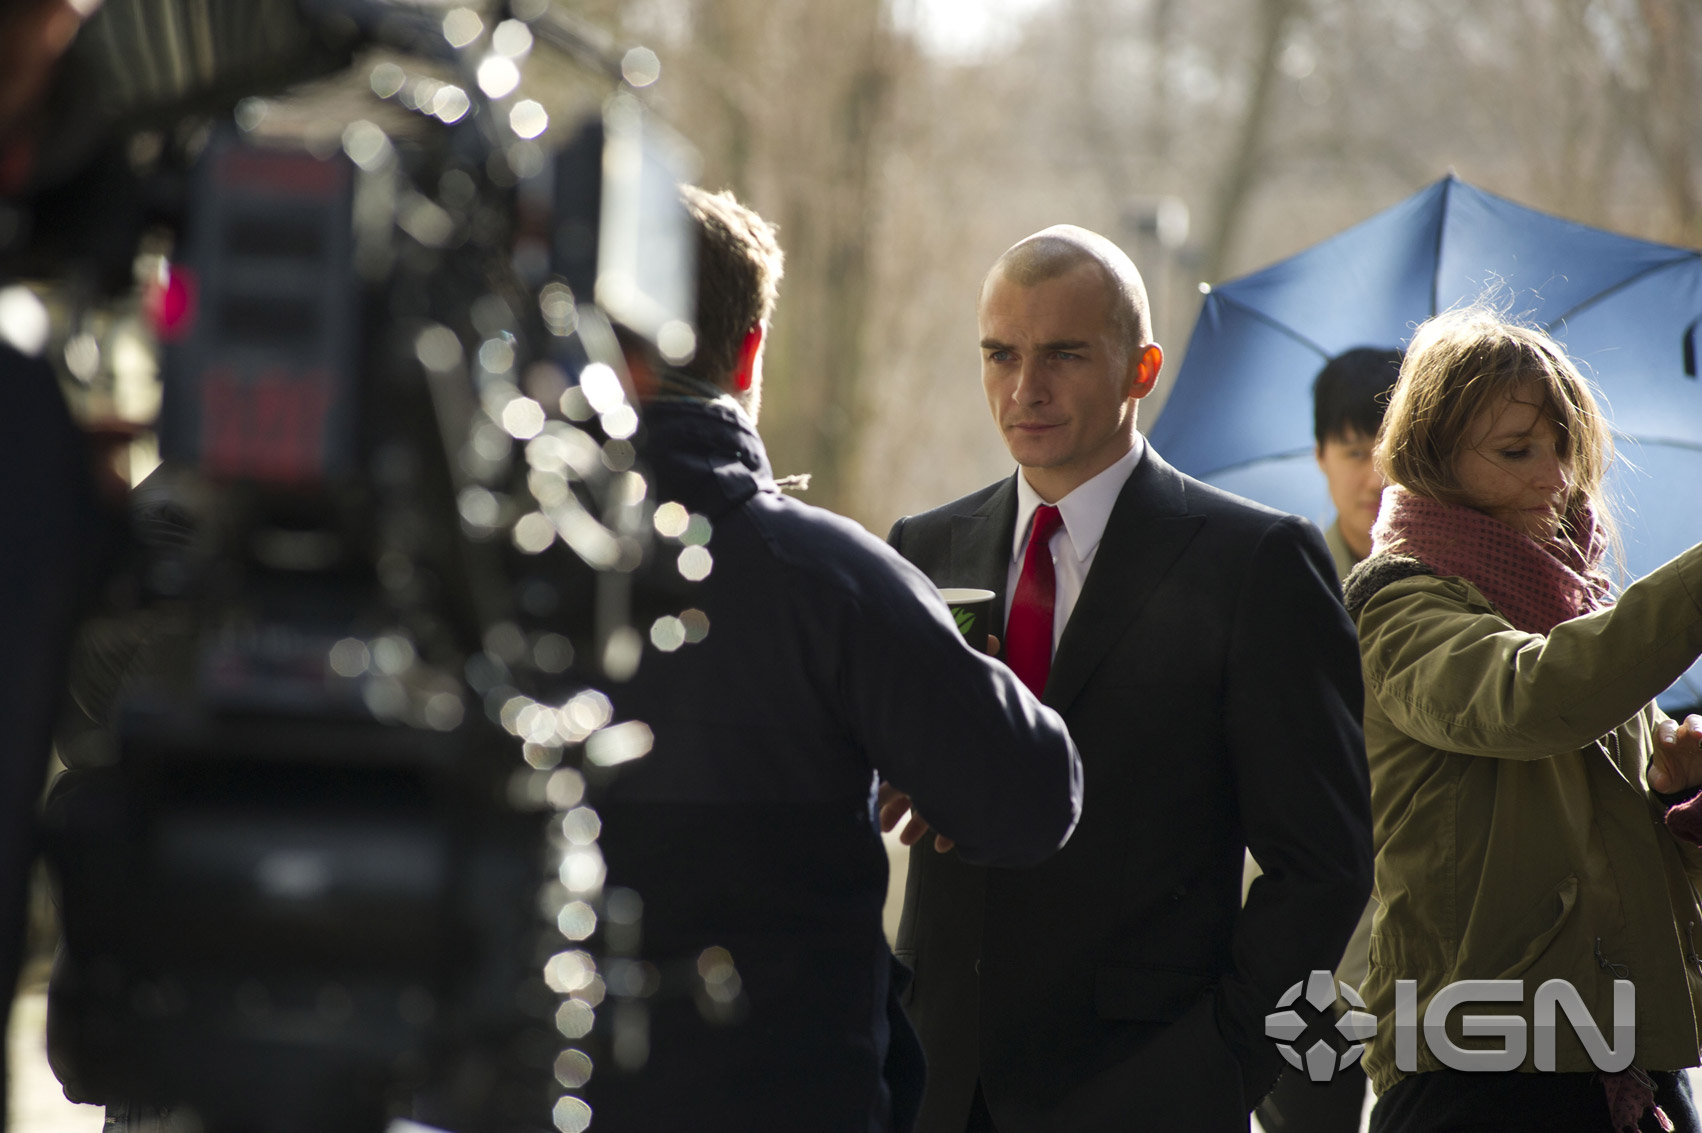 First Agent 47 Image Released As Hitman Reboot Nears